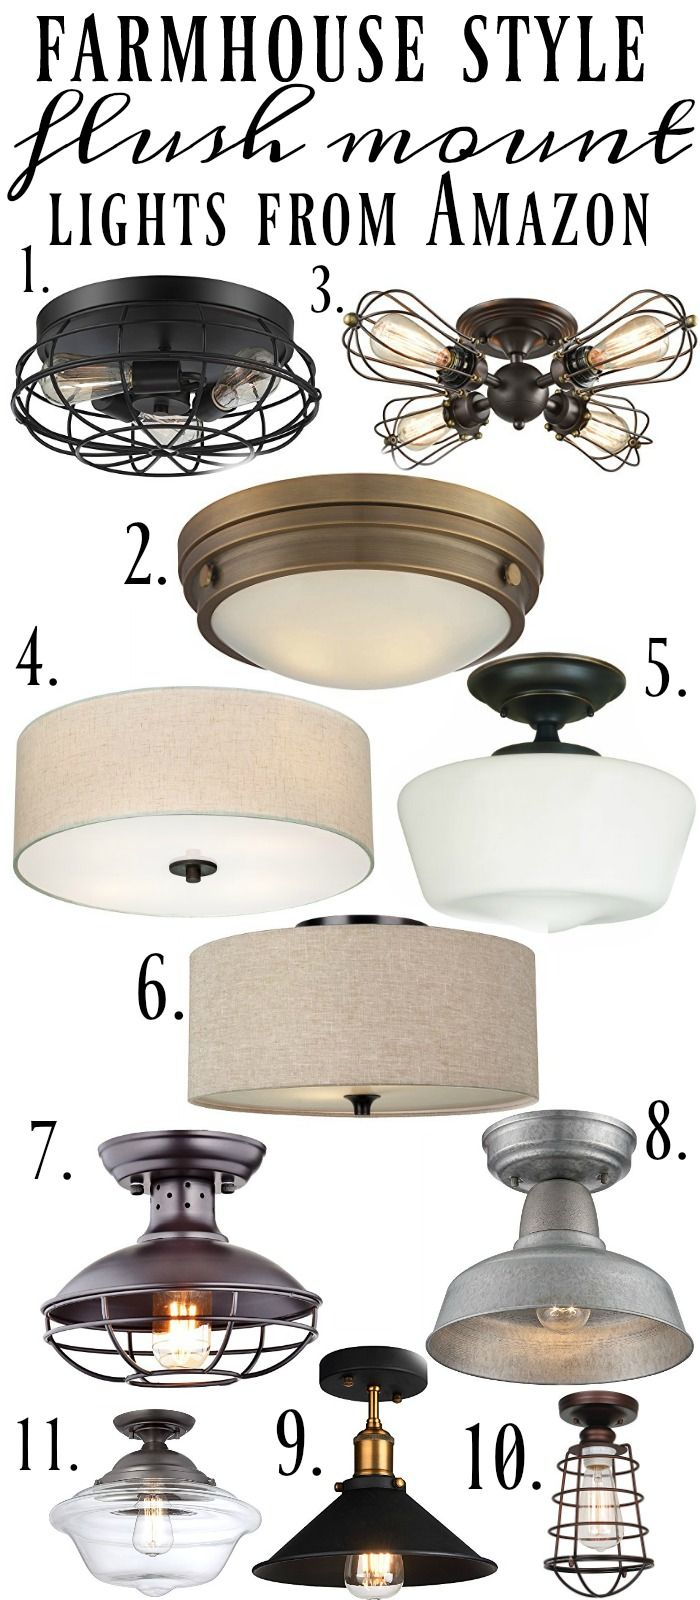 Farmhouse flush mount lights farmhouse love pinterest flush the best farmhouse flush mount lights all from amazon a great pin for farmhouse decor and inspiration aloadofball Gallery